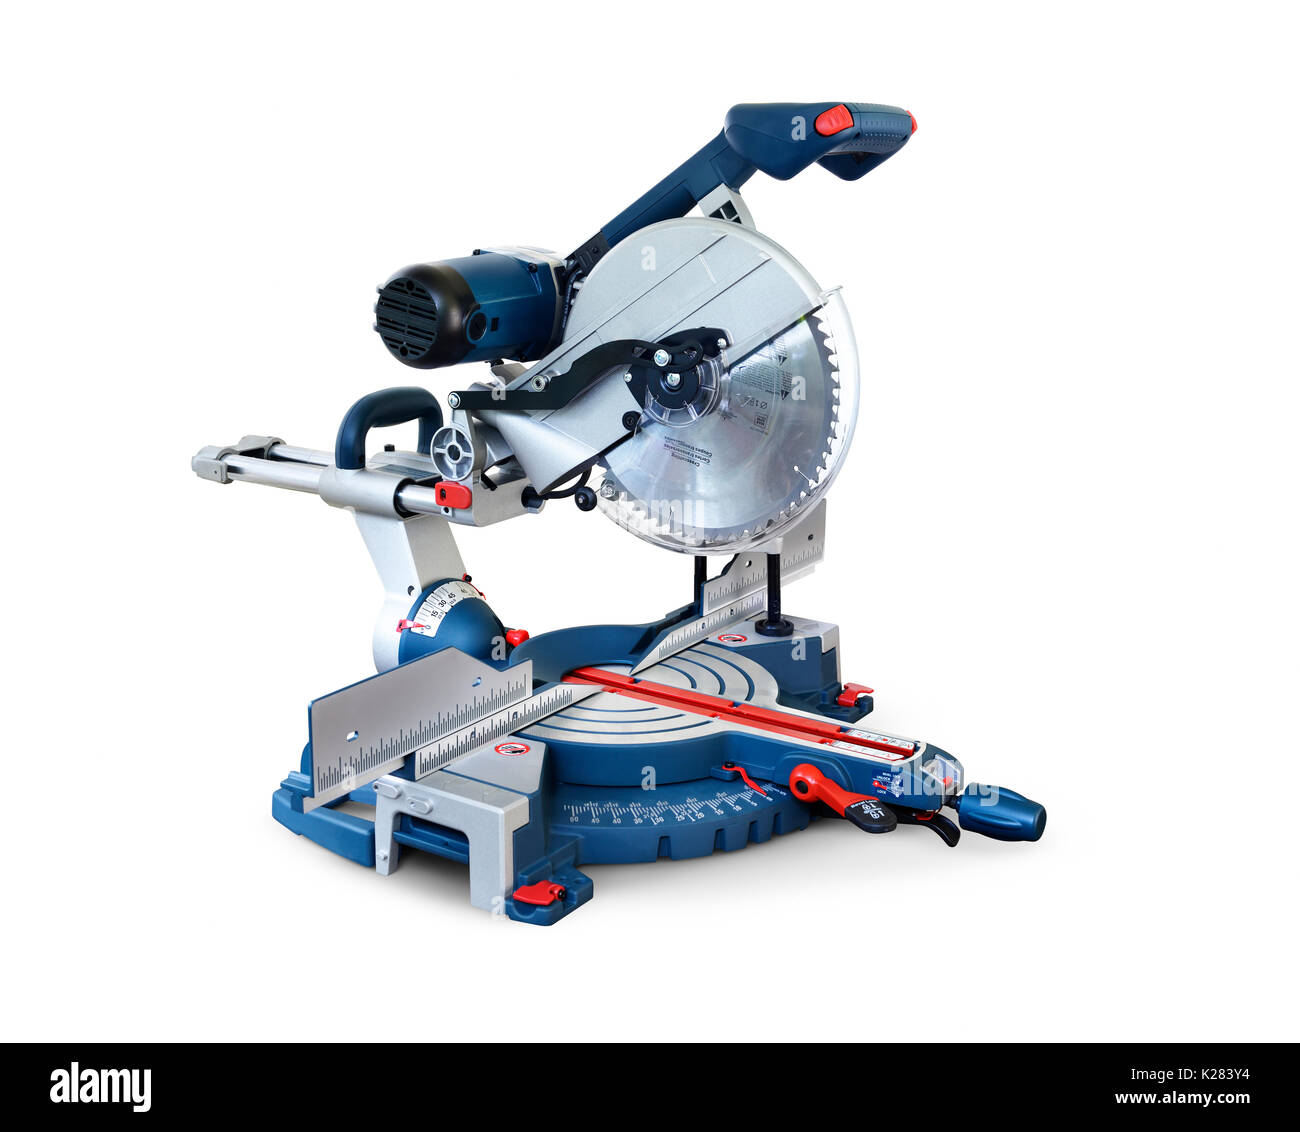 Miter saw, Mitre saw power tool isolated on white background with clipping path - Stock Image